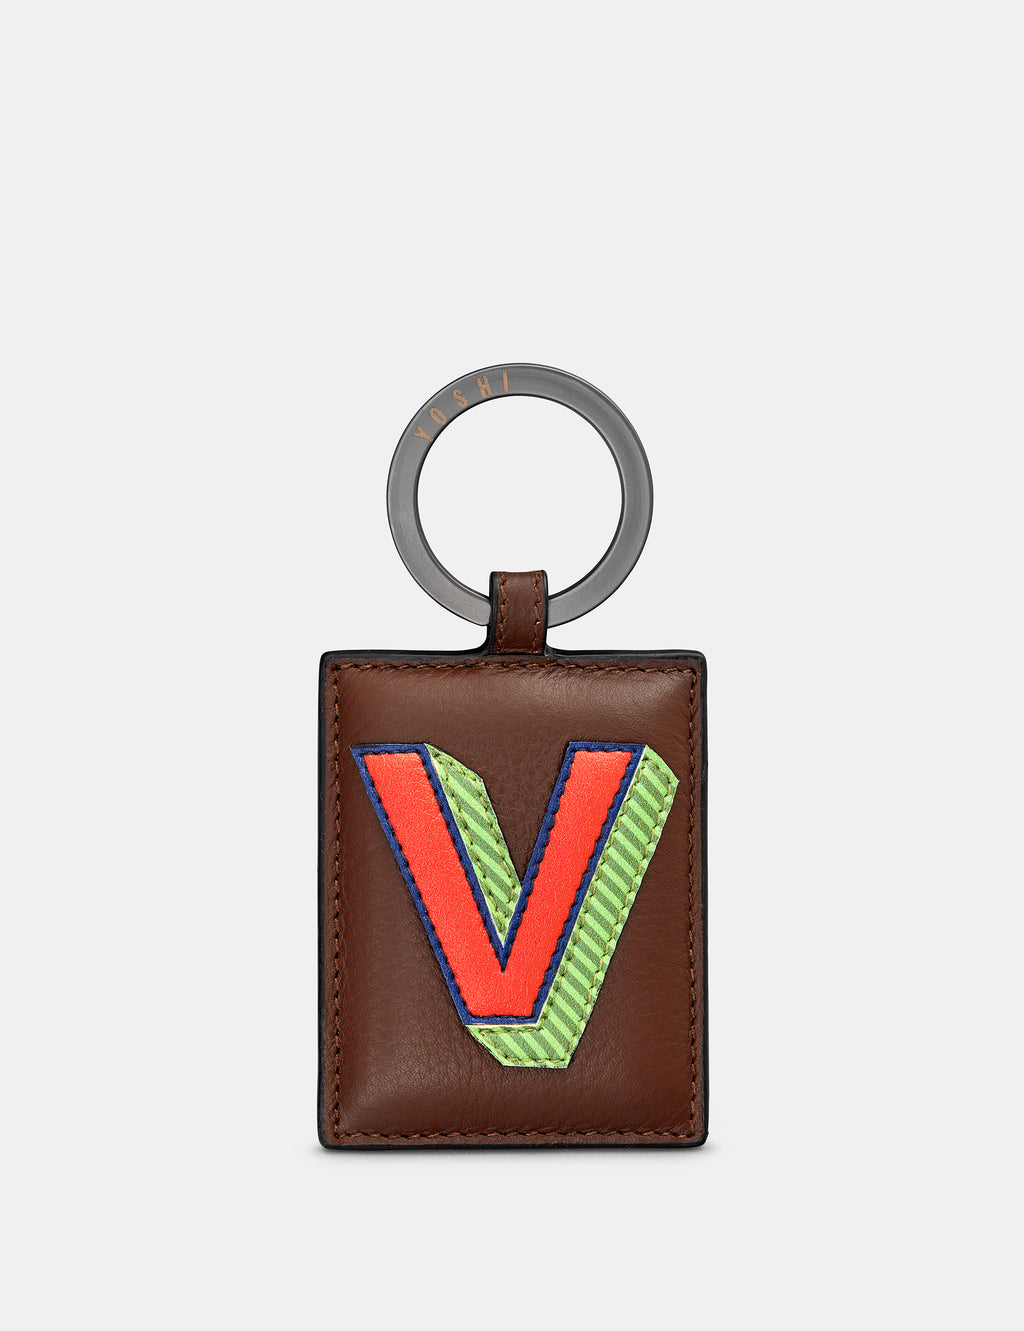 V Initial Brown Leather Keyring